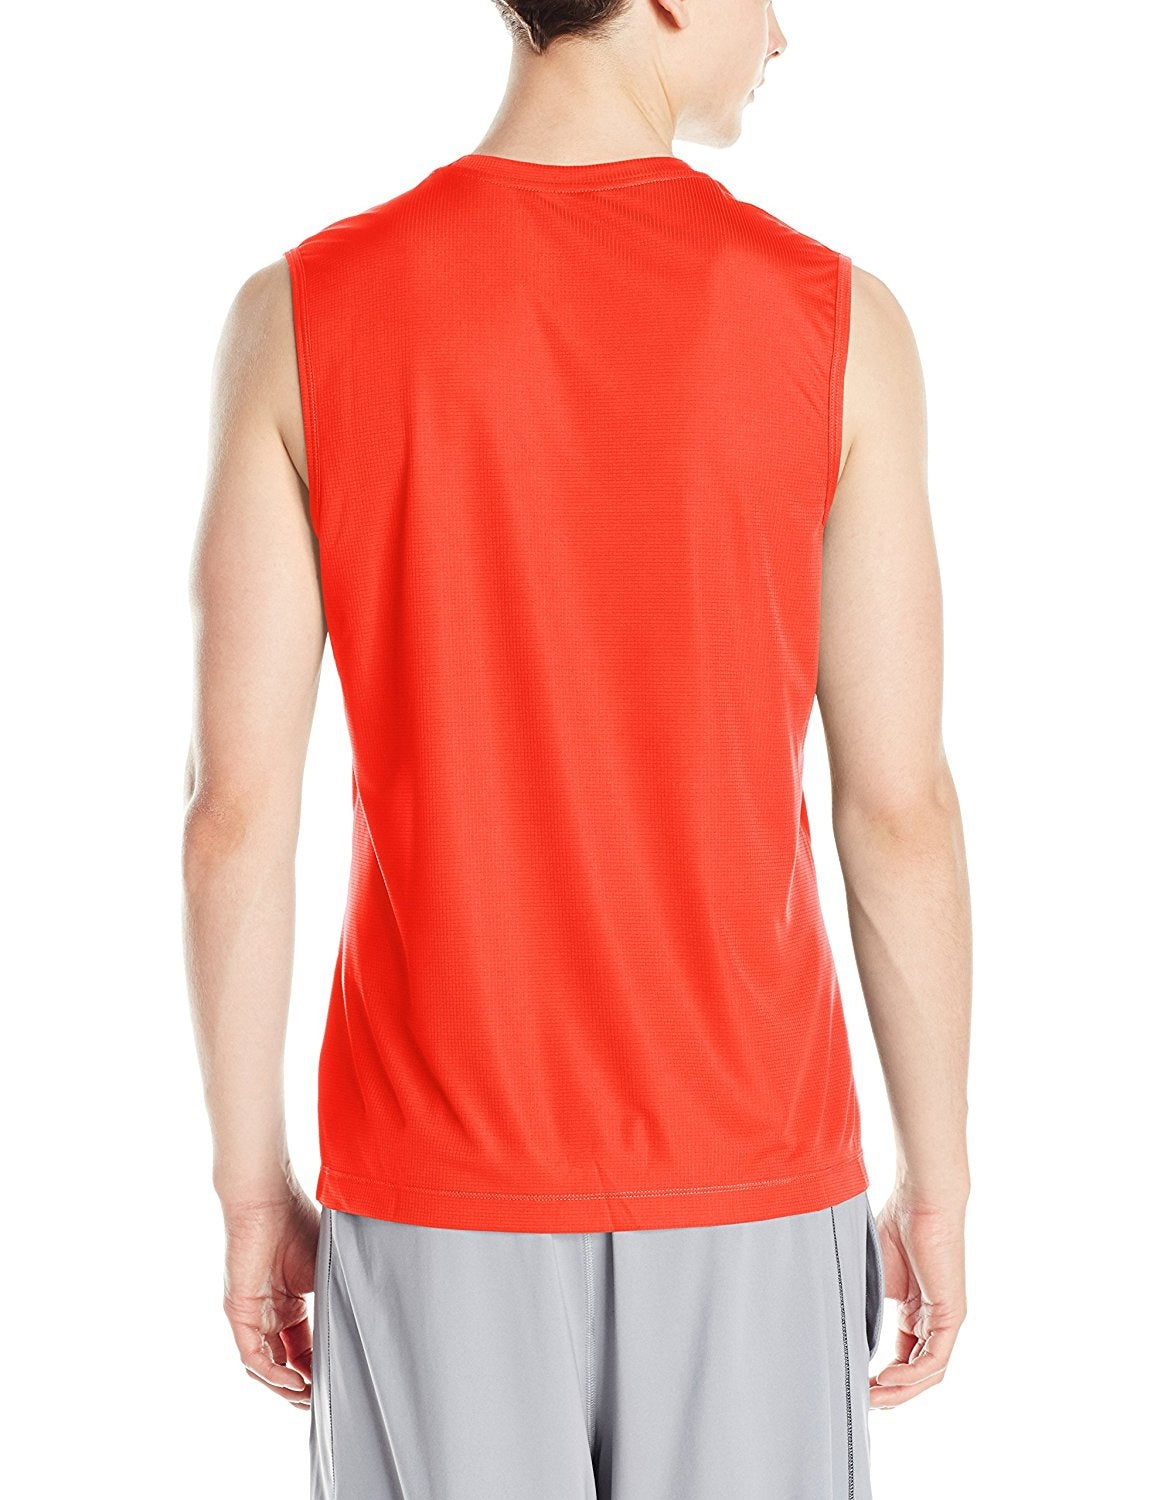 Asics Men's Sleeveless